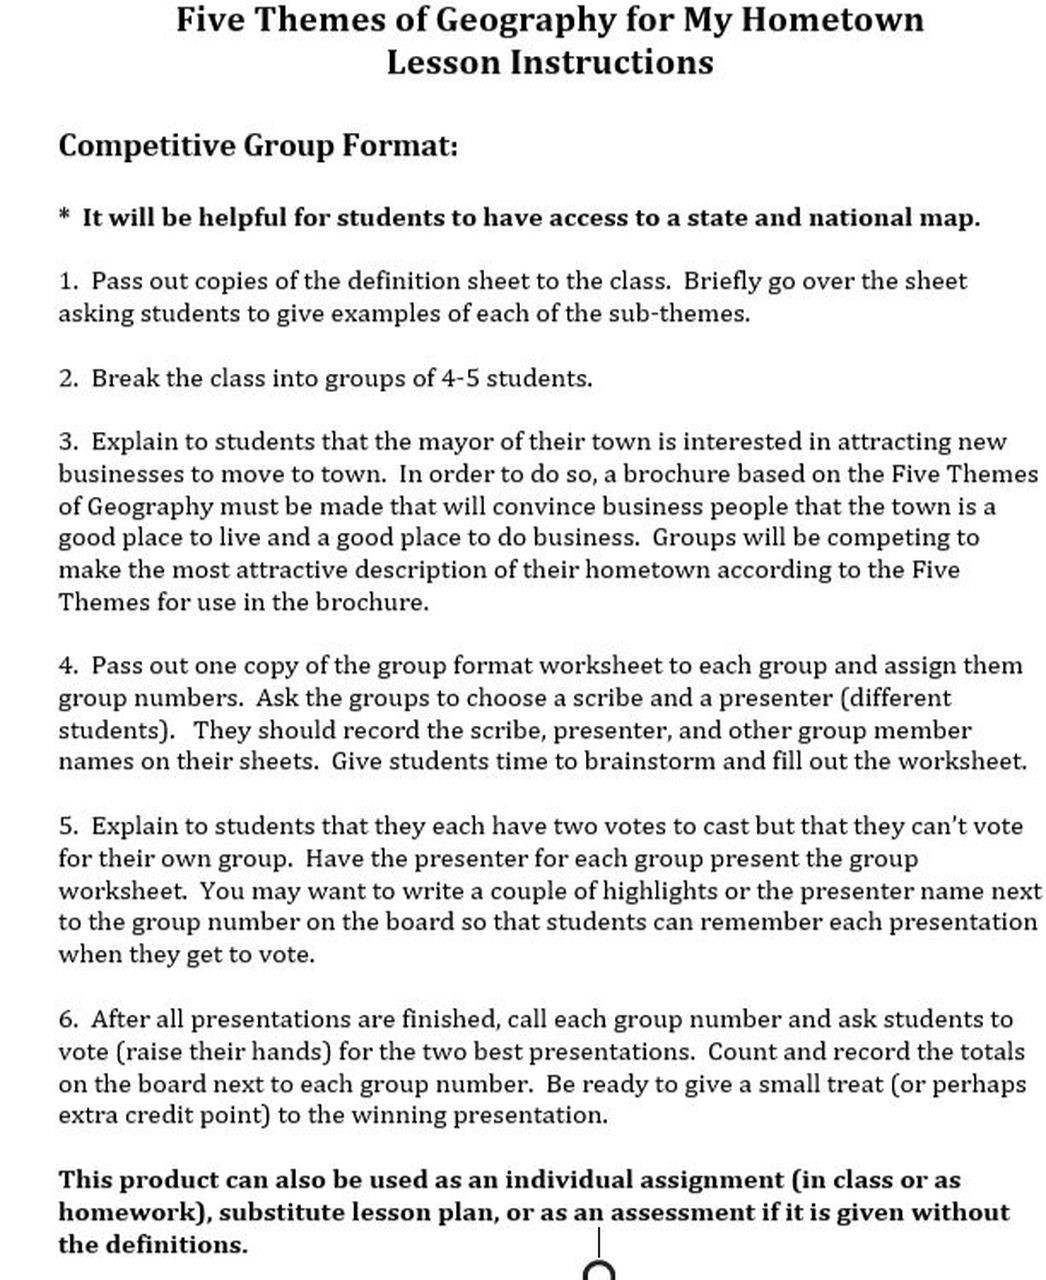 5 themes Of Geography Worksheet Five themes Of Geography for My Hometown